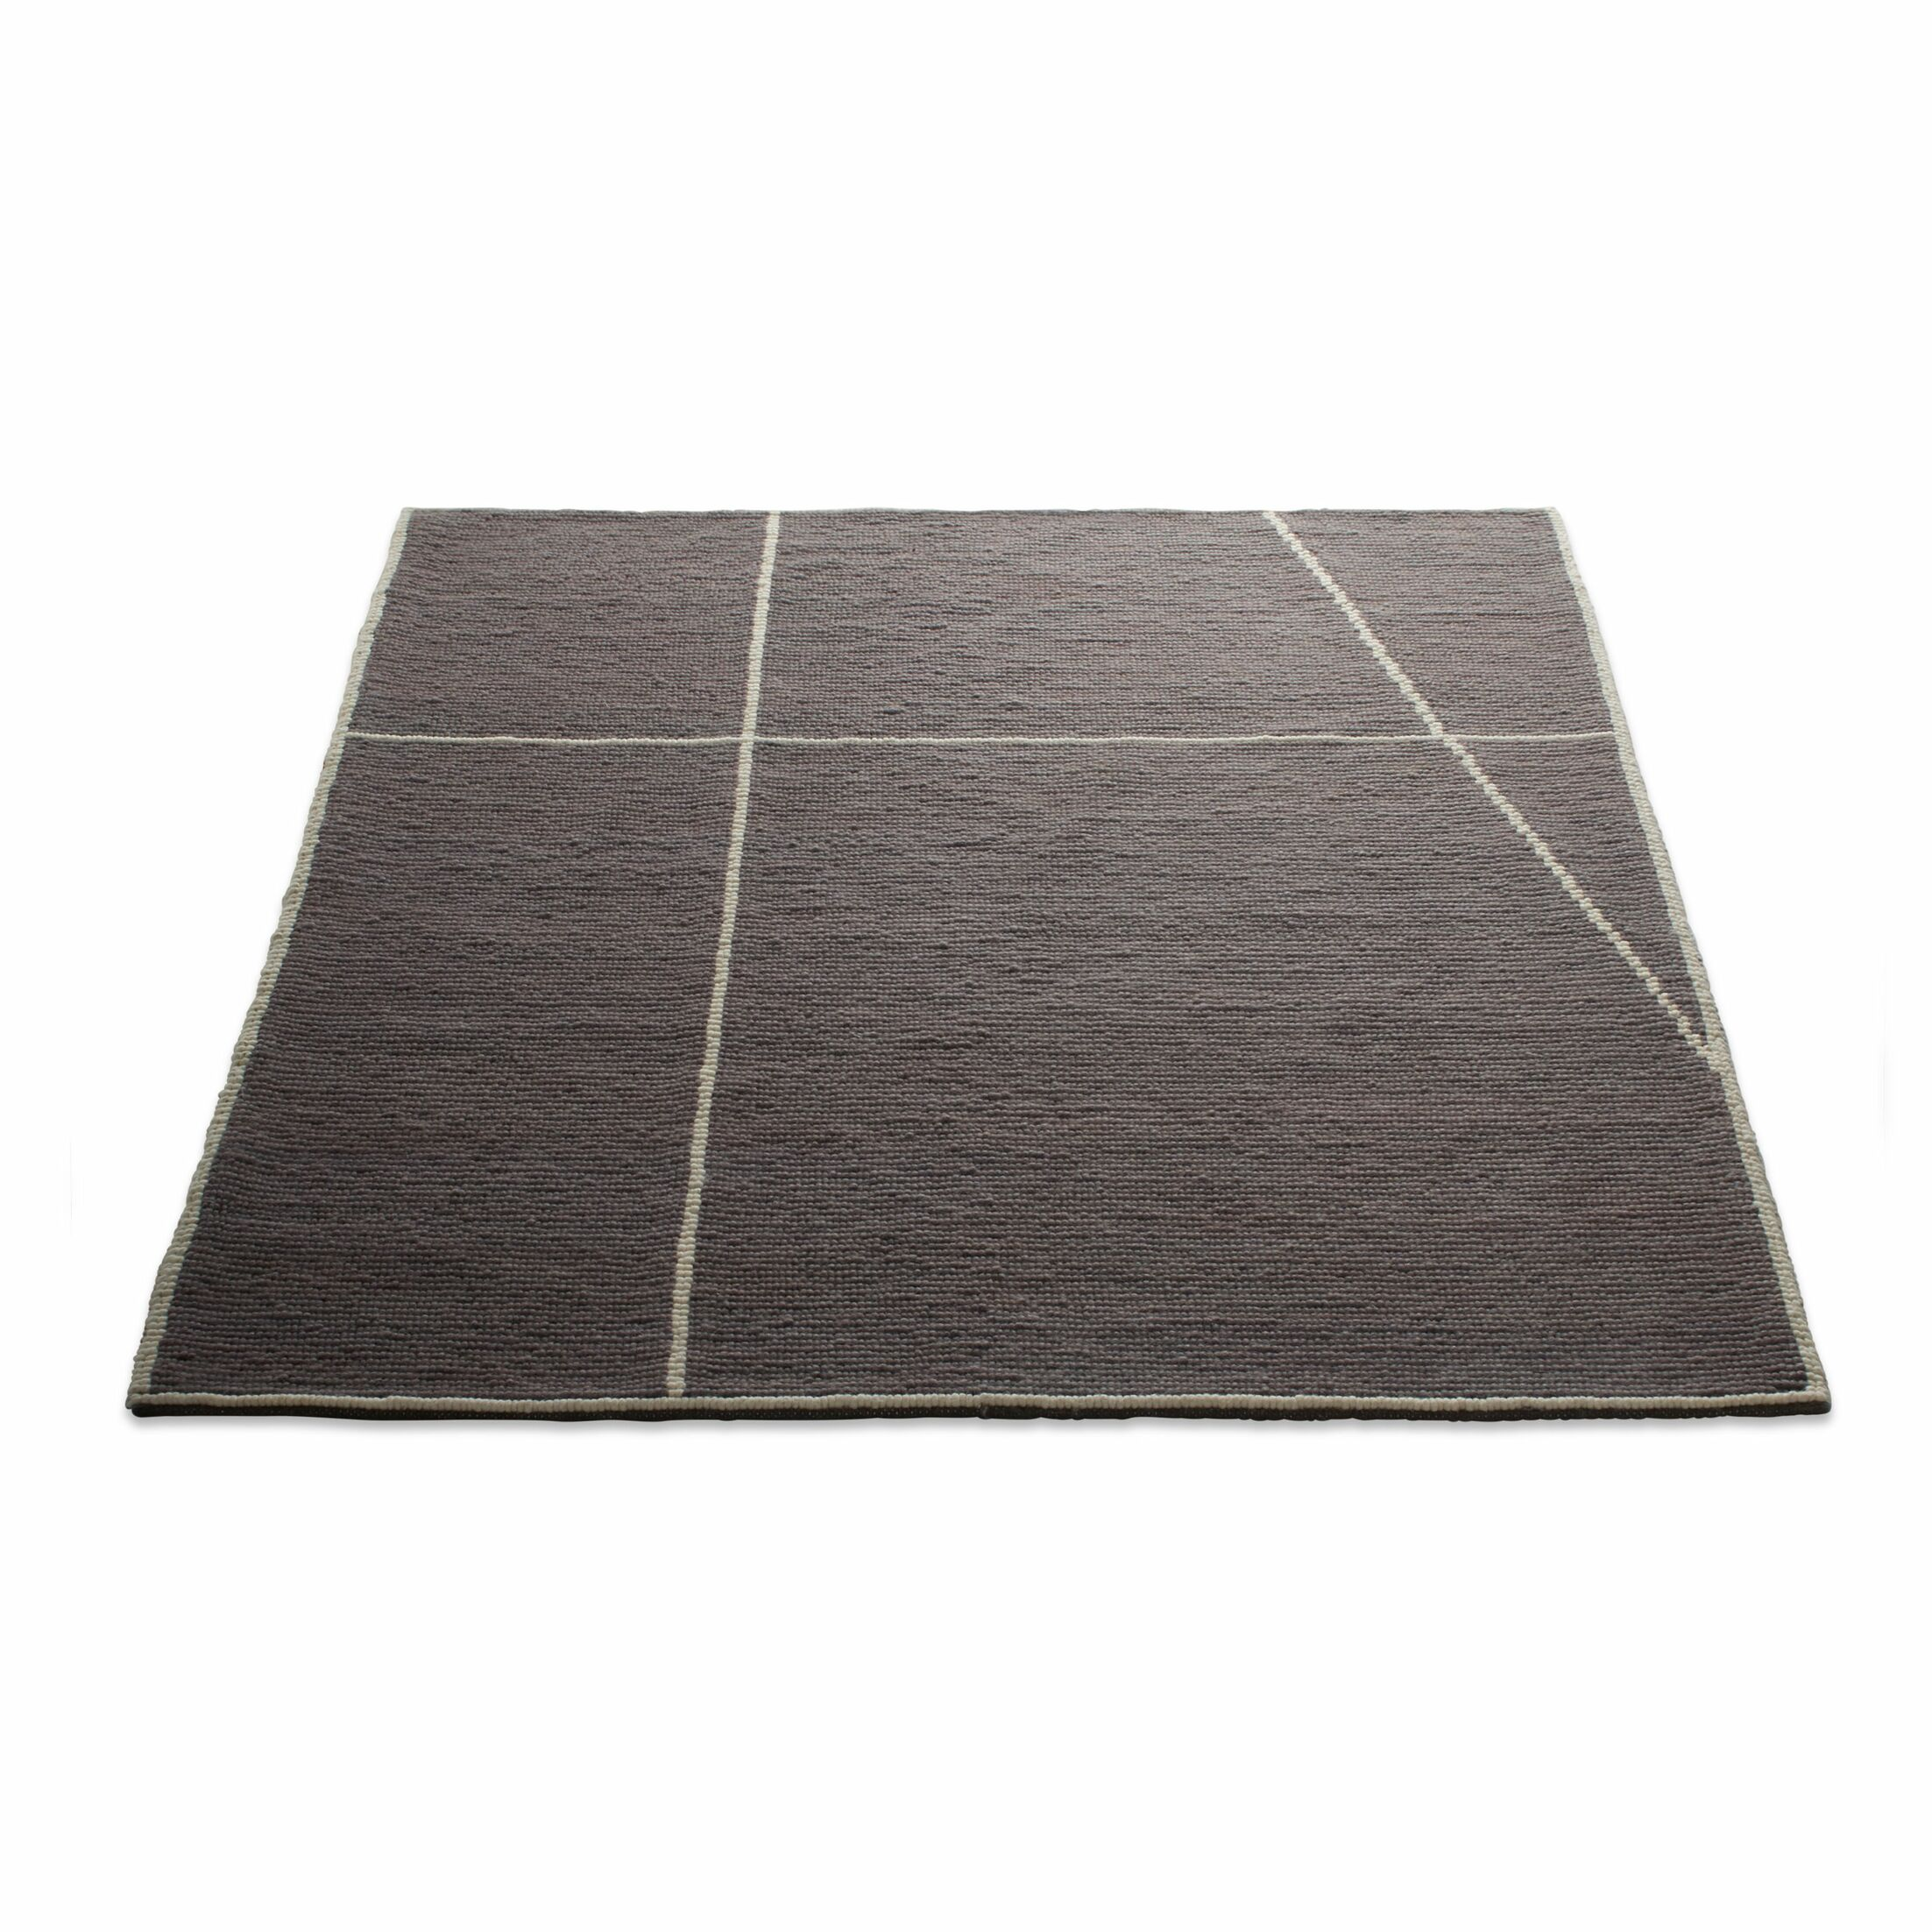 Collet Hand-Woven Wool Dusk Area Rug Rug Size: 8' x 10'